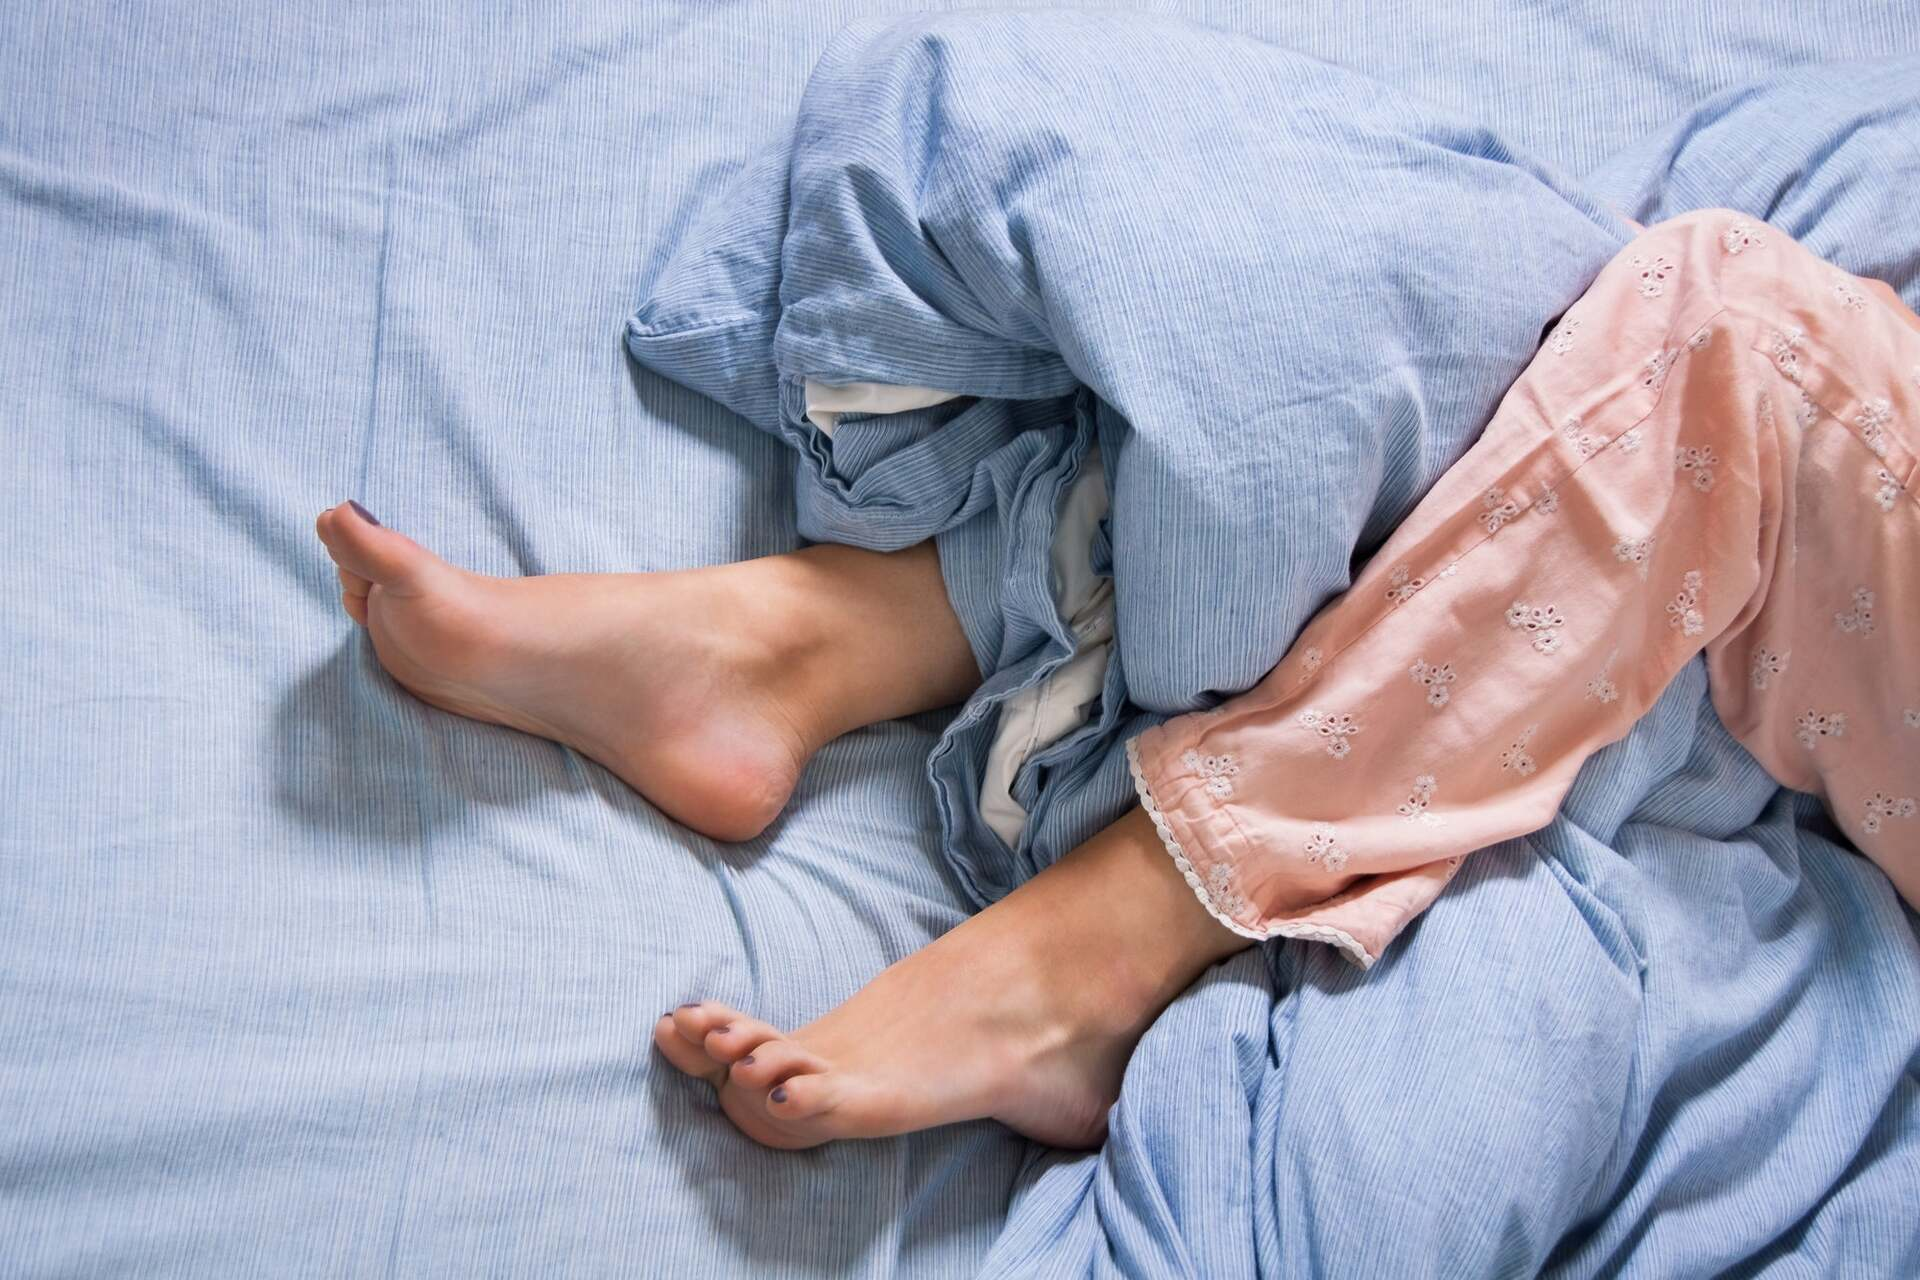 Do Restless Legs Mean Restless Nights?: A Study by the Eight Sleep Lab